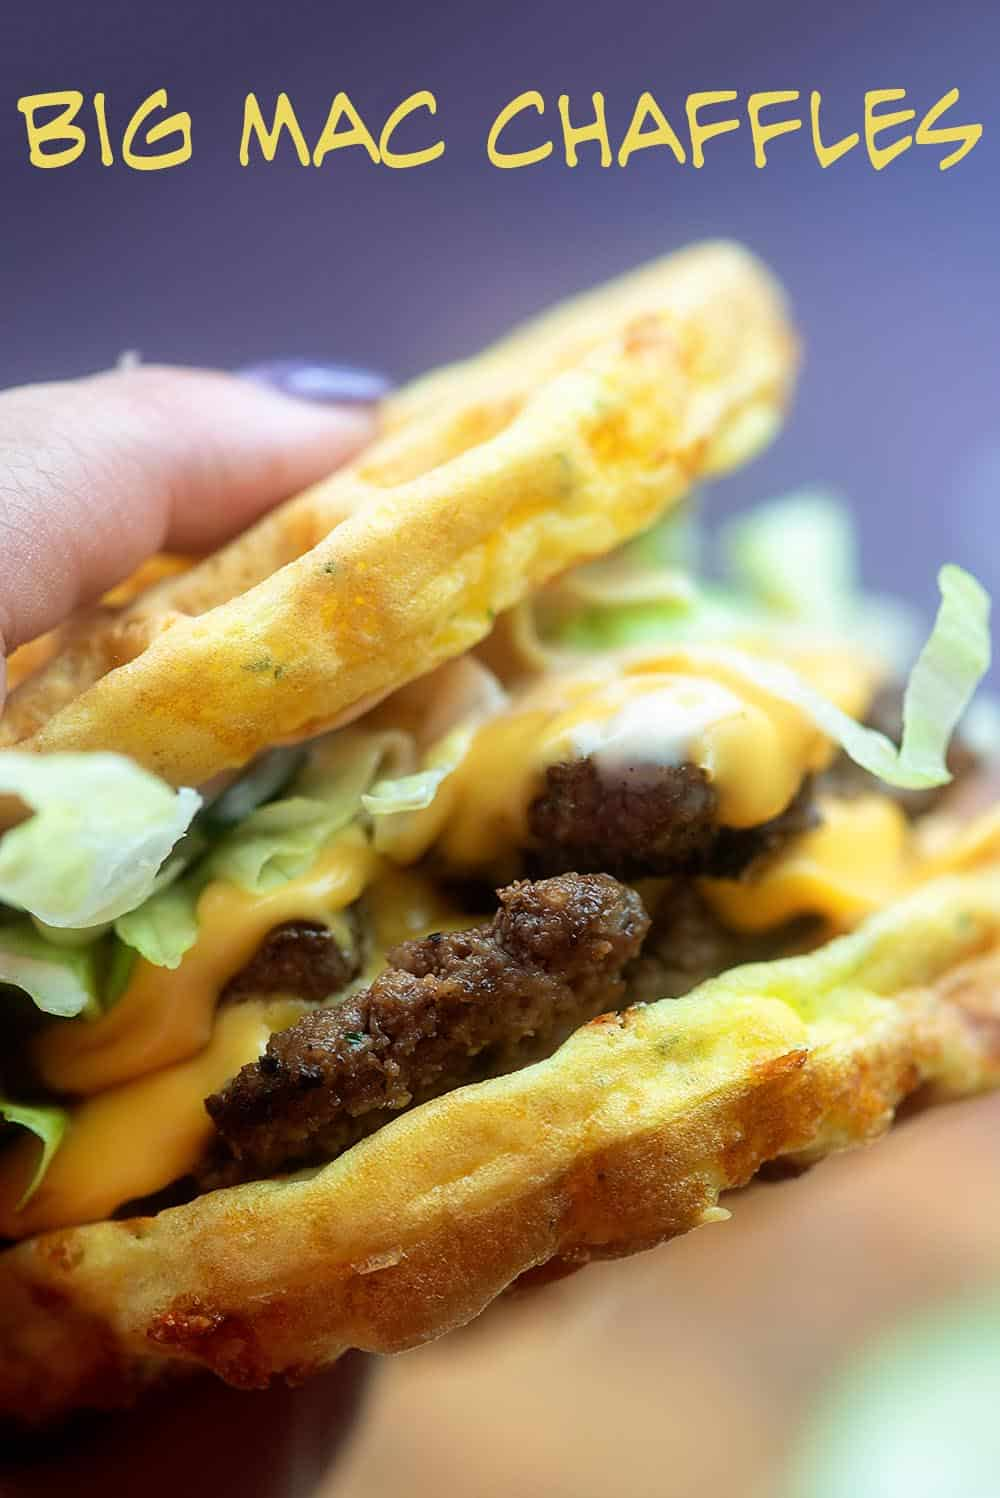 big mac chaffle in a women's hand